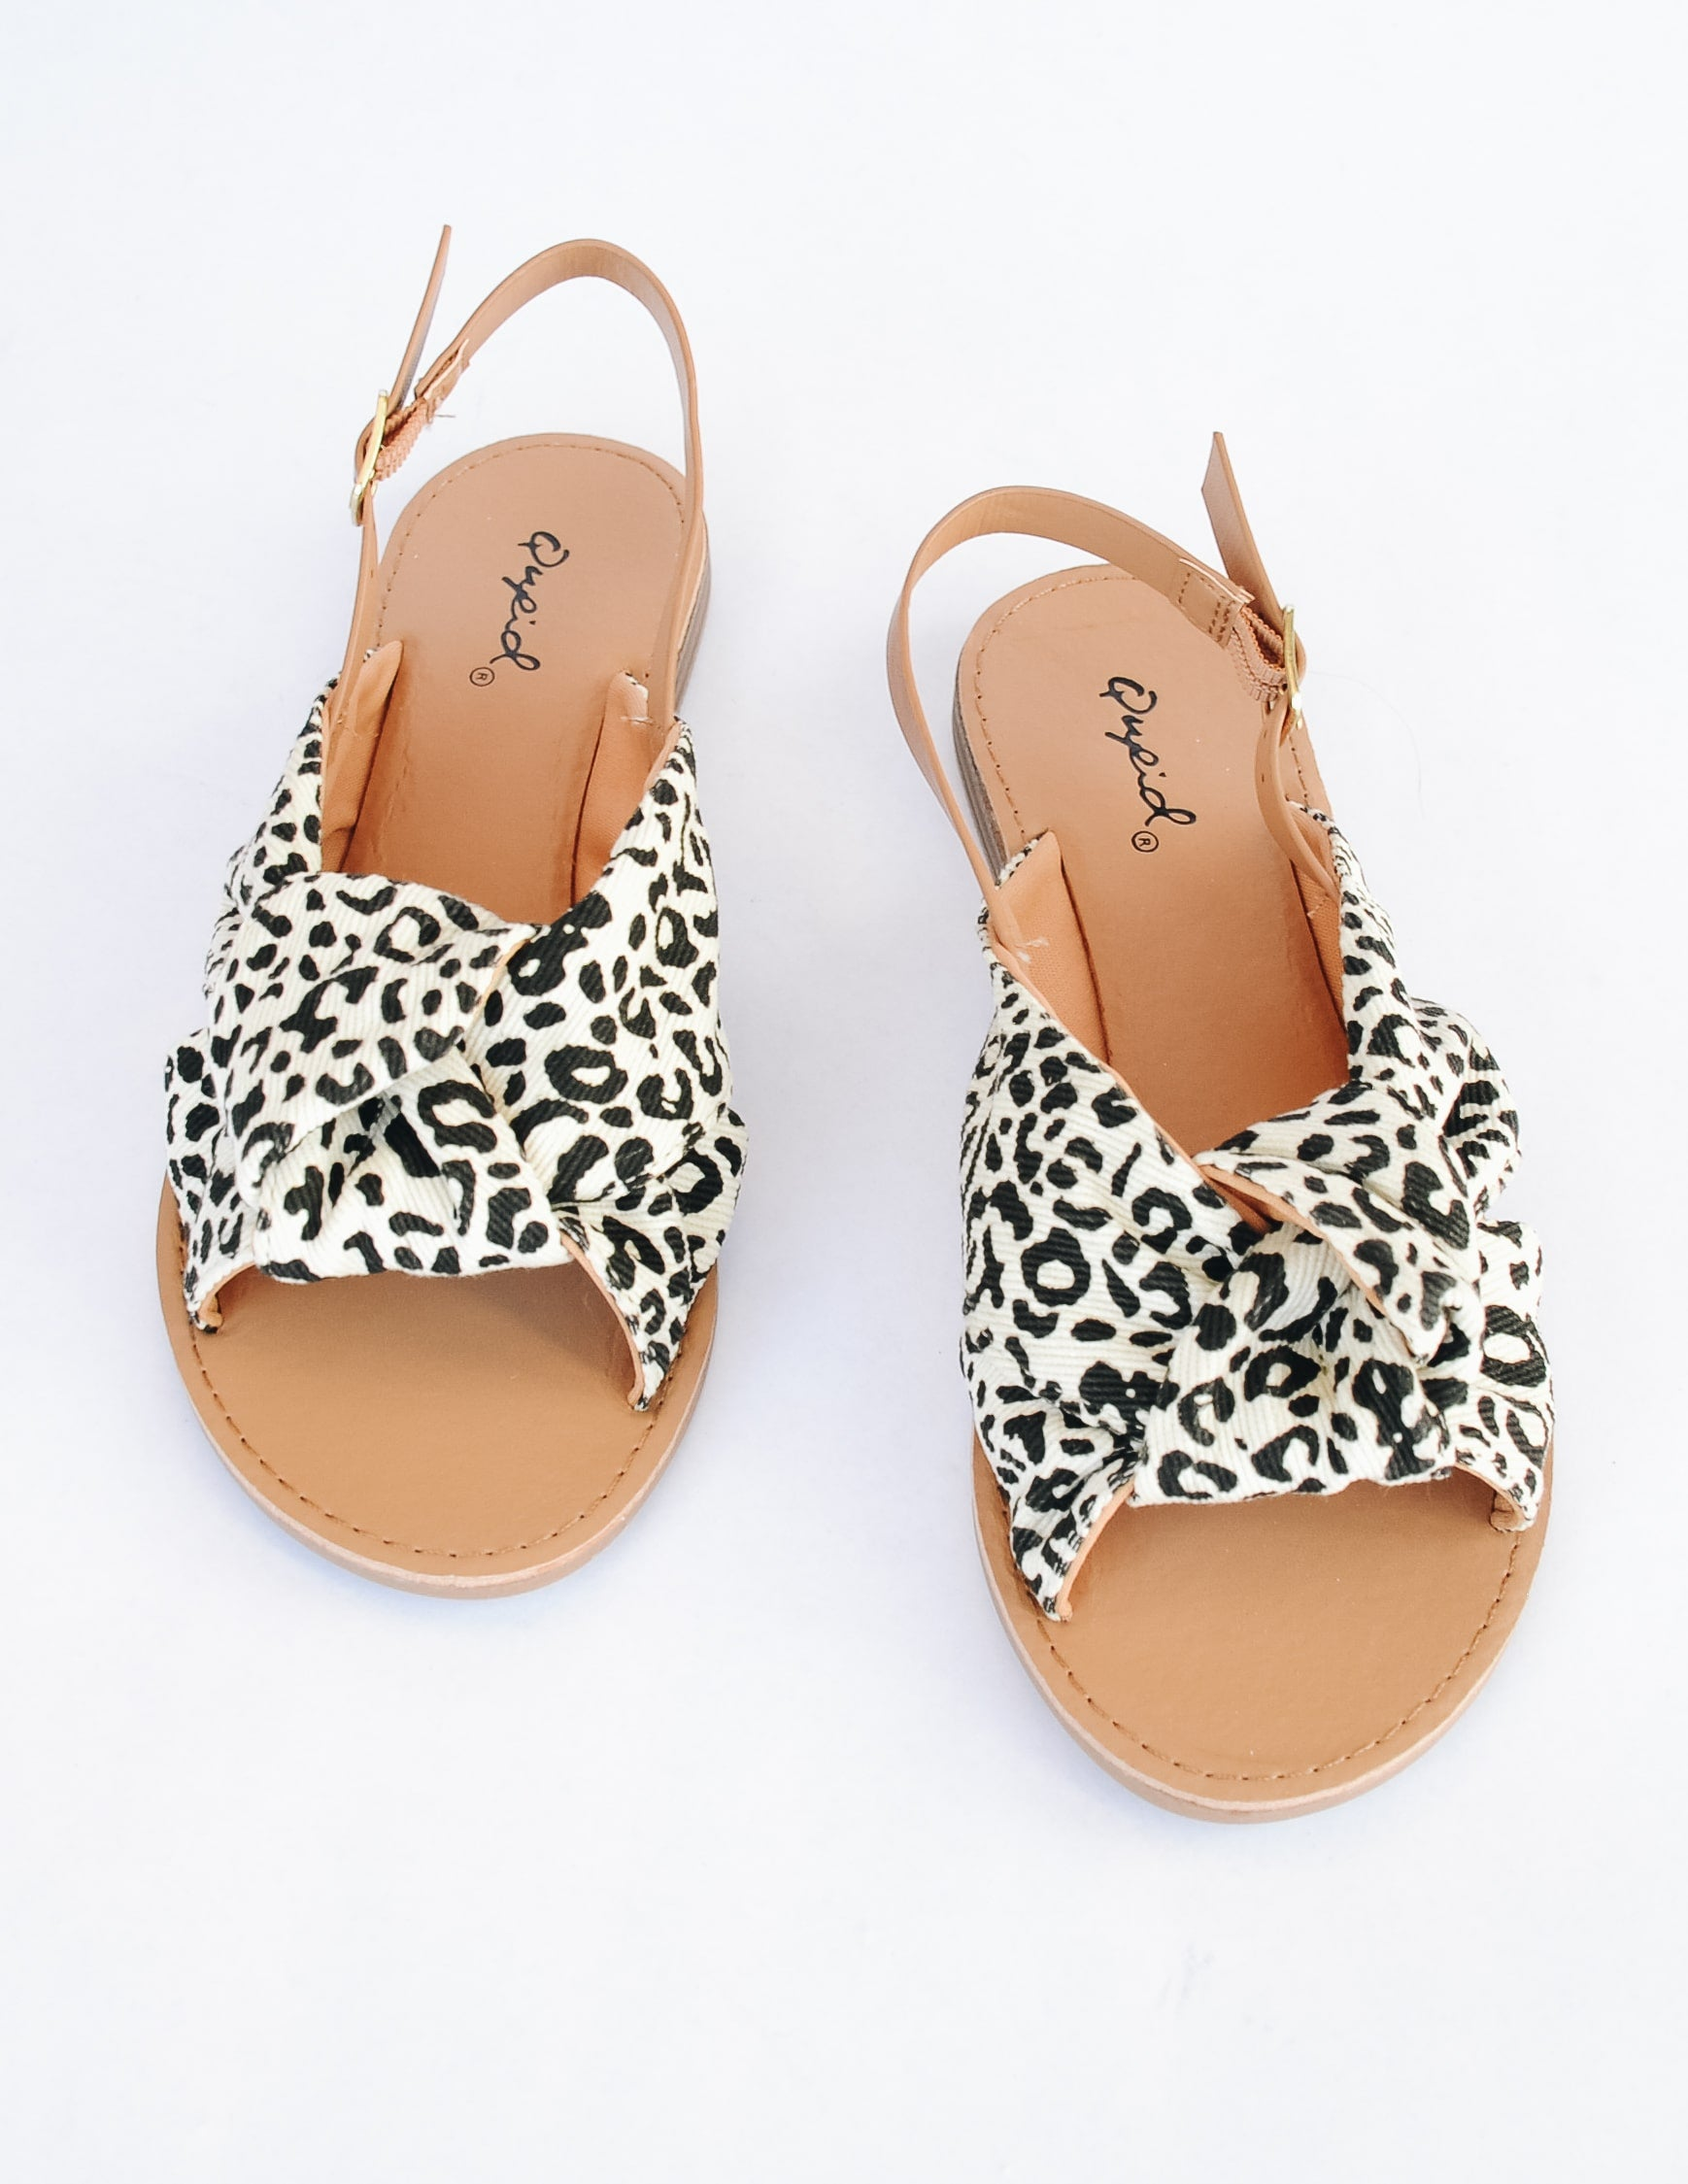 Leopard print run wild sandals with tan insole and woven print upper